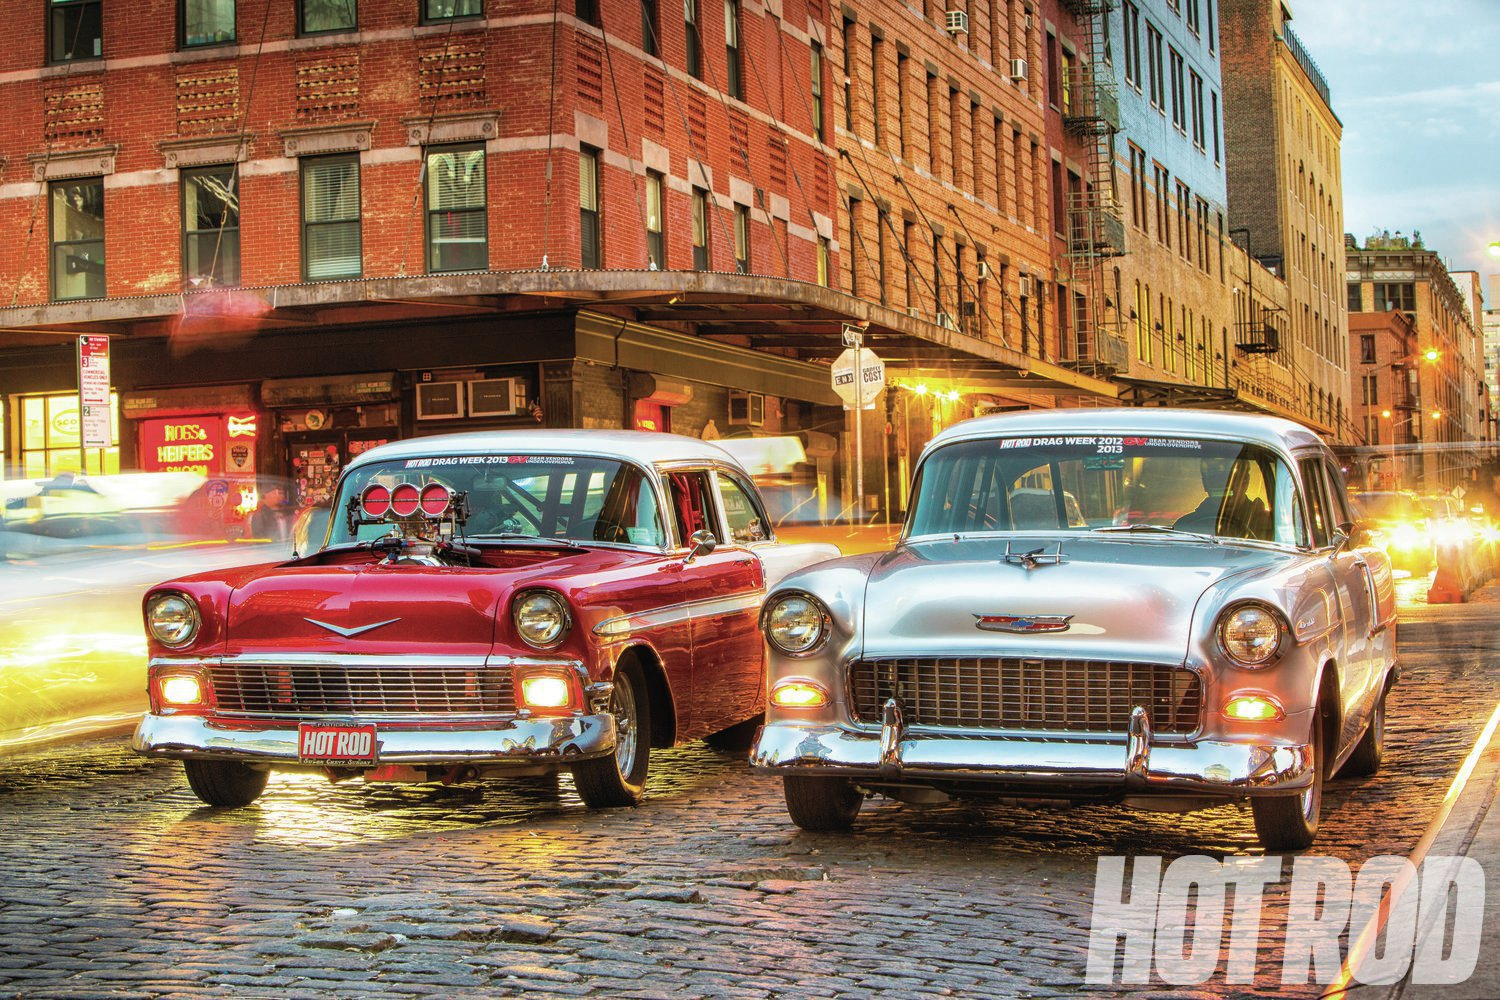 "New Yorkers are notoriously hard to impress, but the sight of two shoebox Chevys rolling through town was enough to make even the most jaded city slicker take note. We heard later from a friend of Glenn's that the evening train back to Long Island was full of people buzzing about ""those two hot rods on Broadway."""